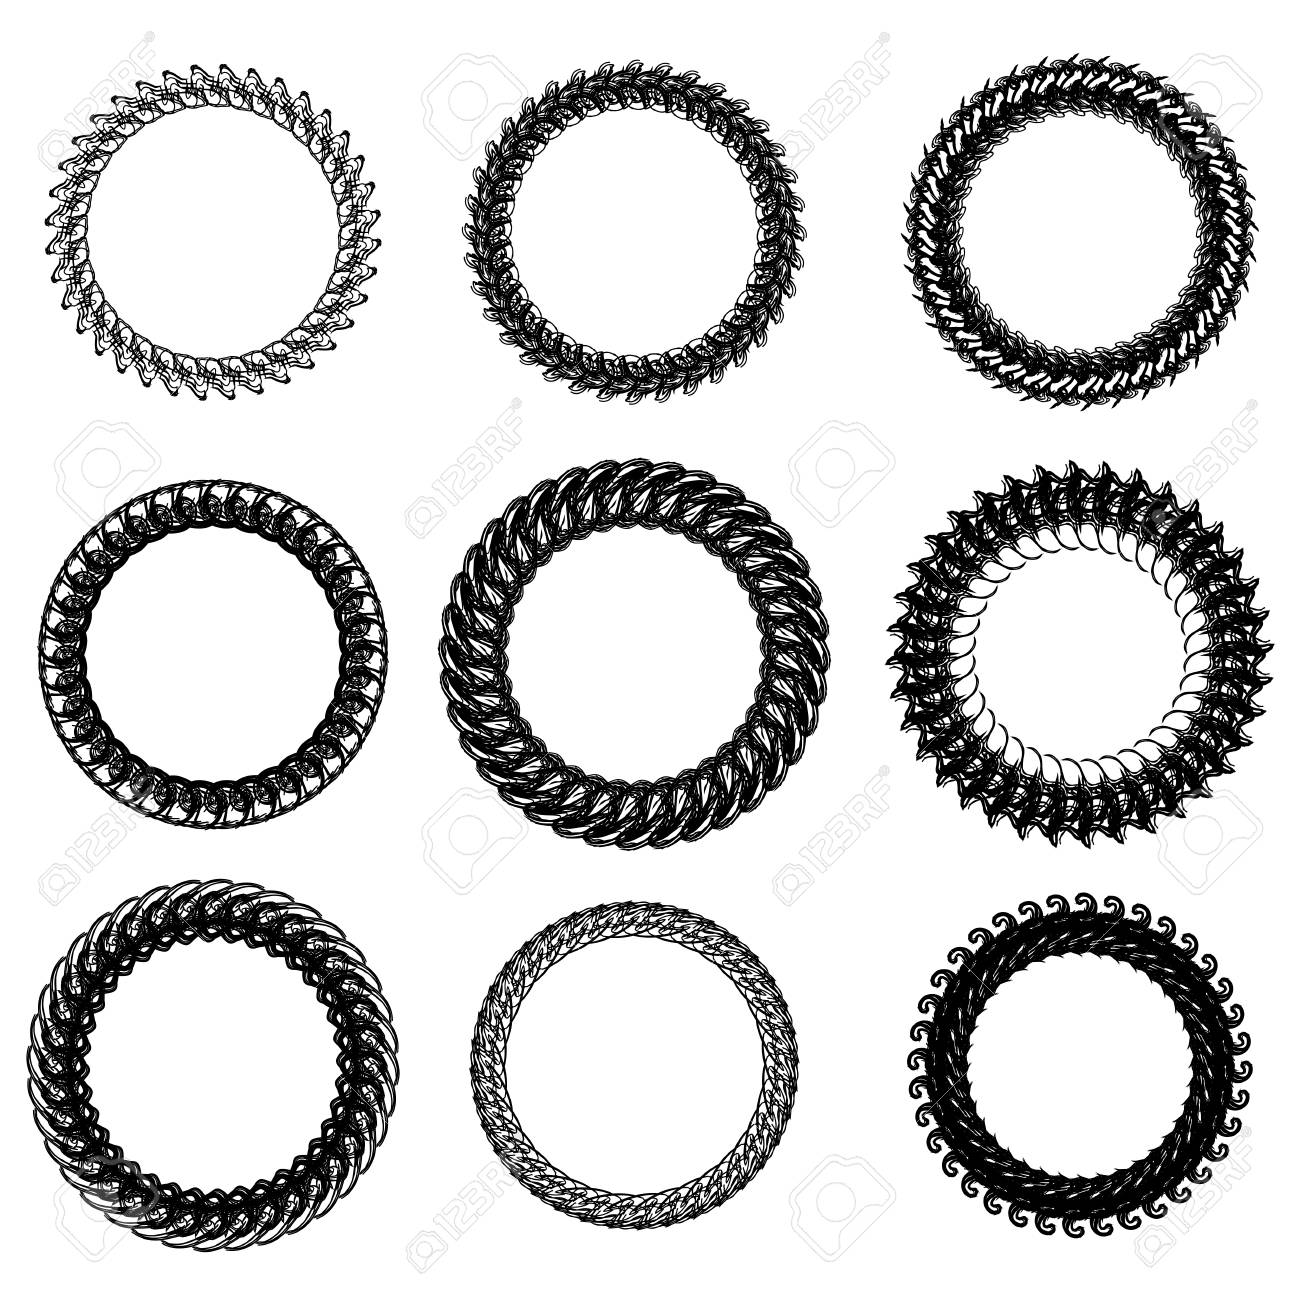 Set Of Decorative Circle Frames Isolated On White Backgrond Royalty ...